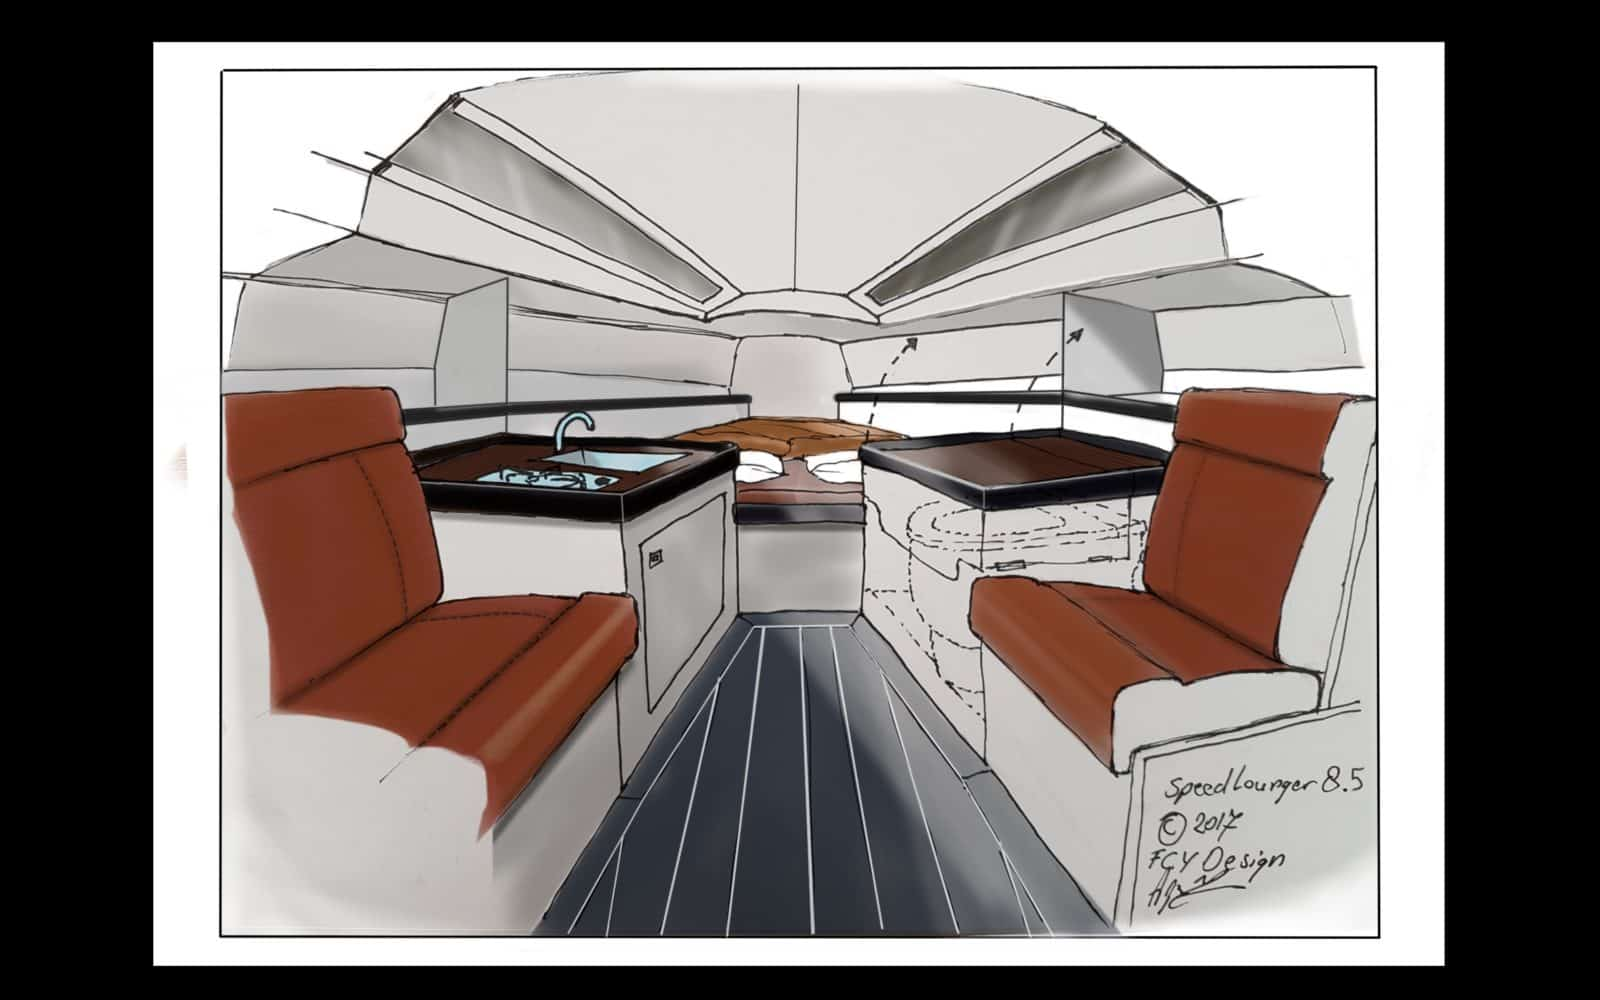 Speedlounger interior